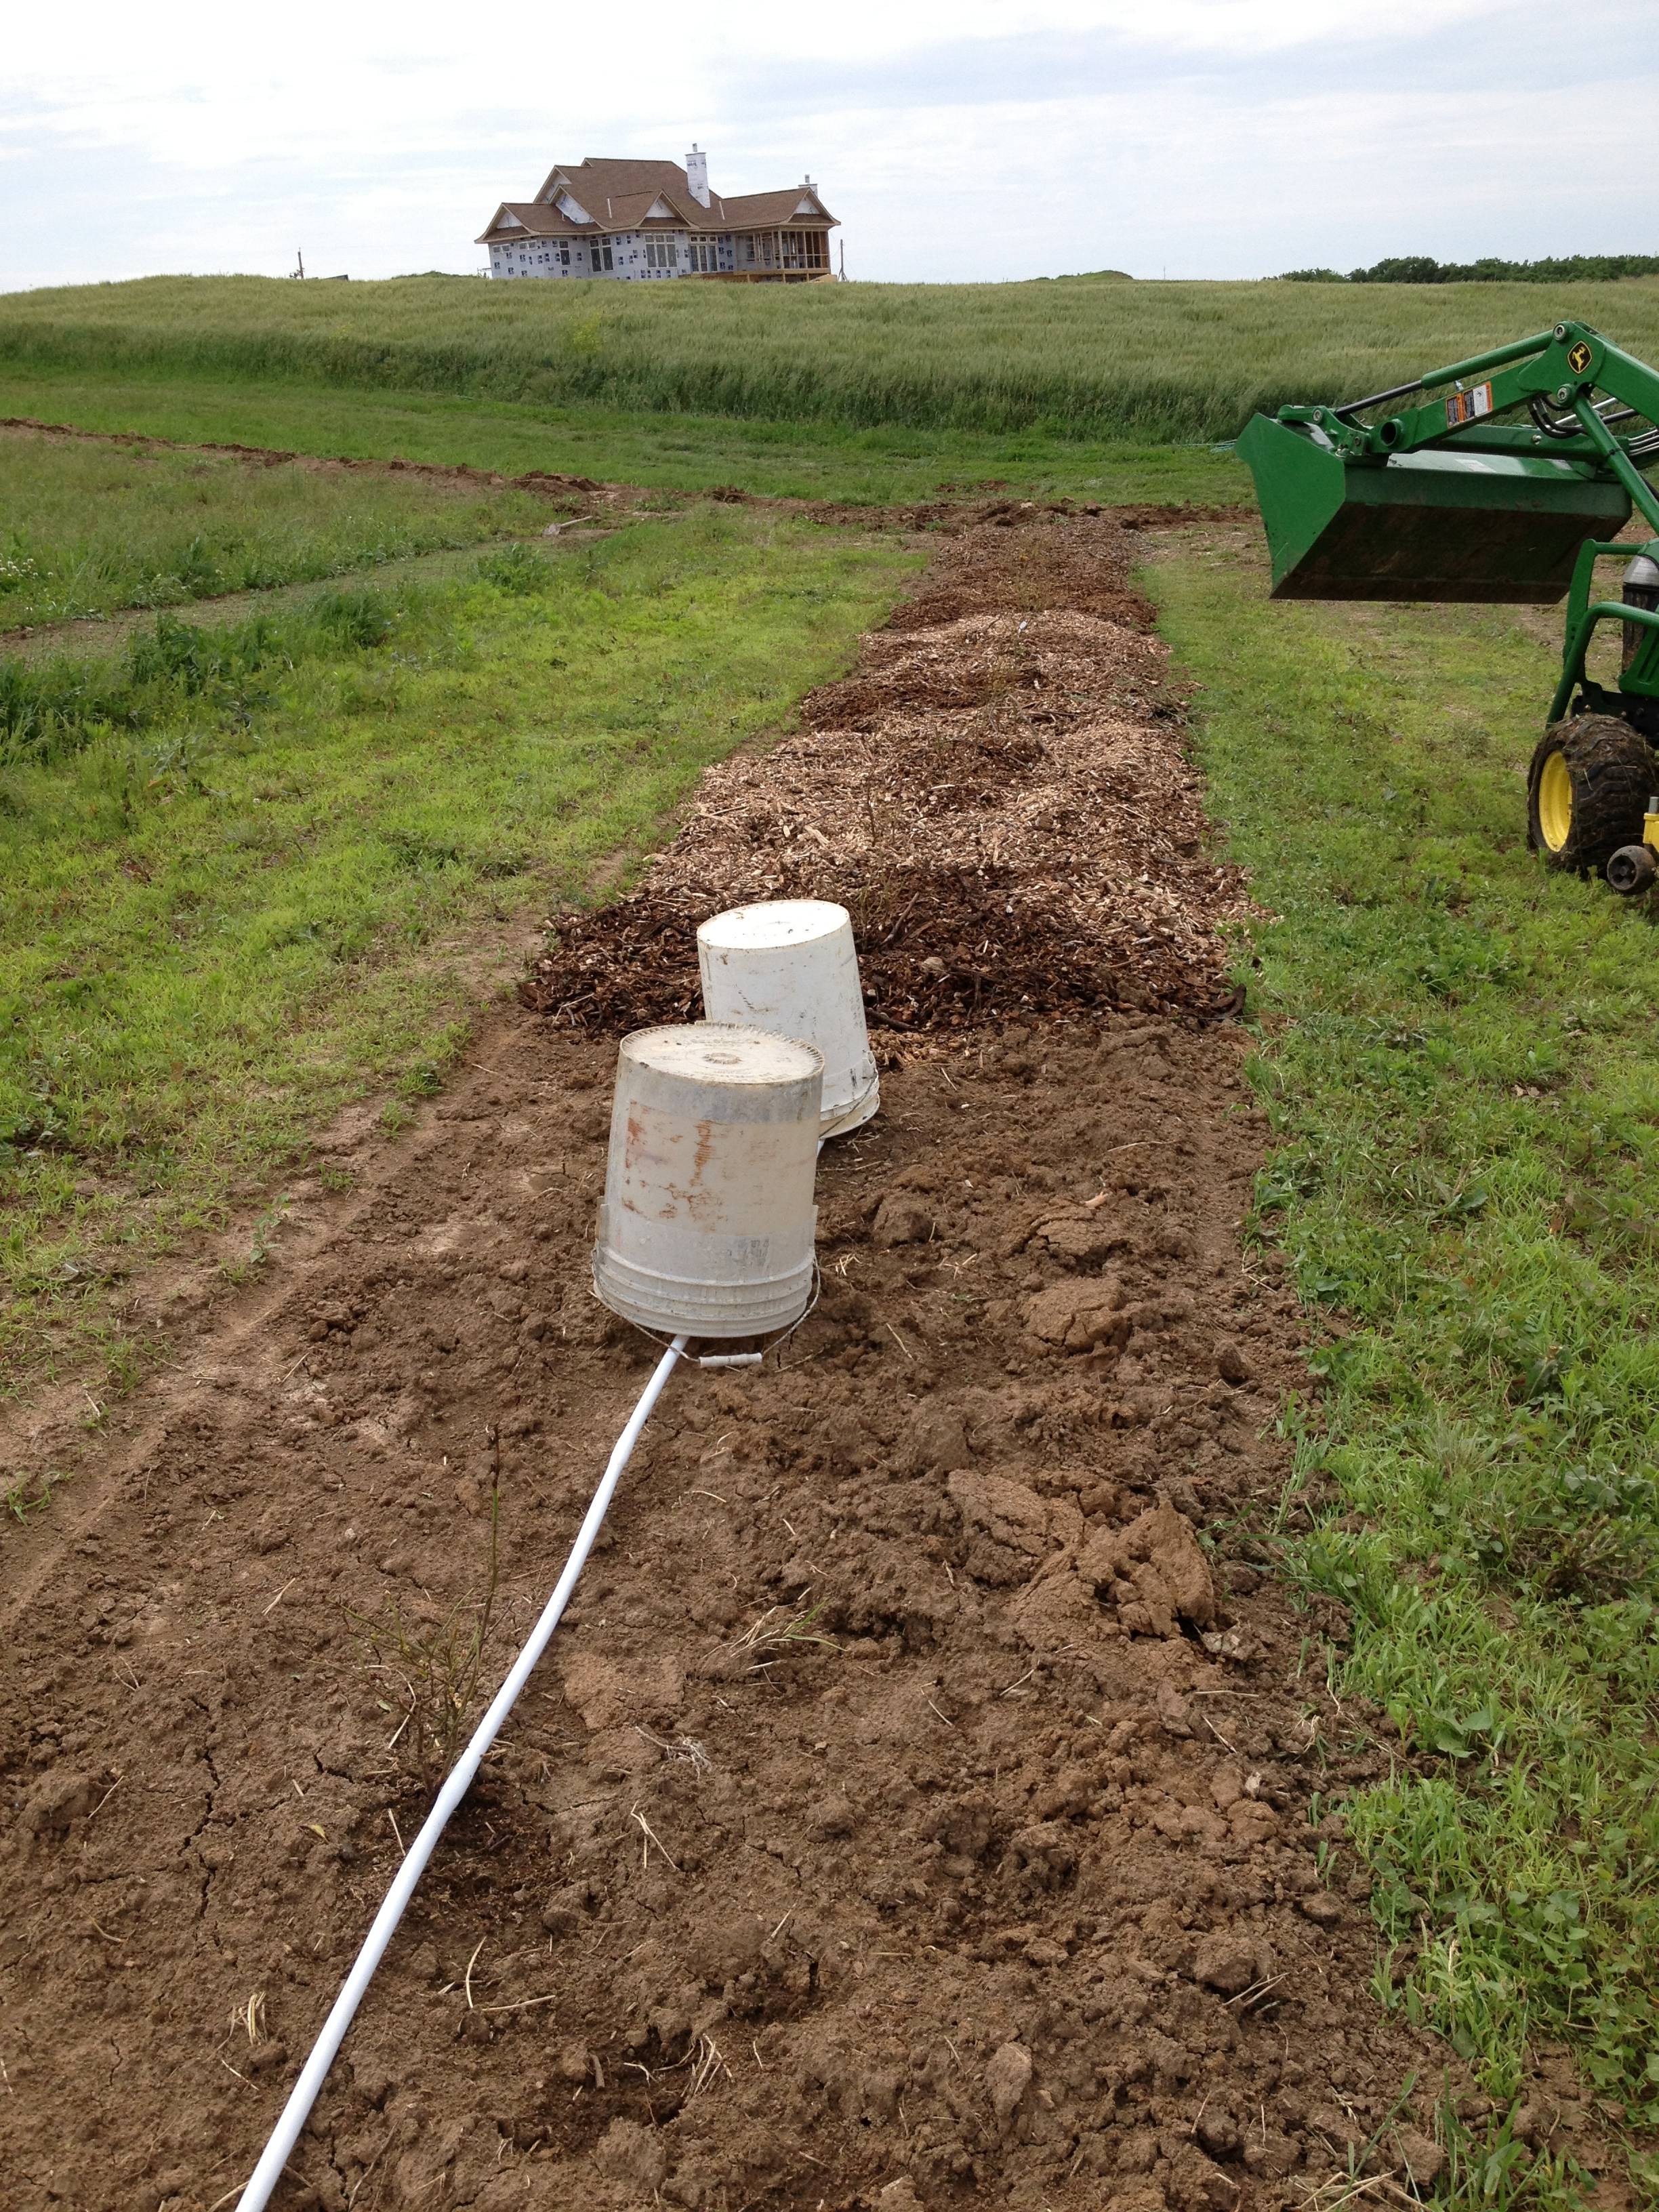 Drip pipe along rows